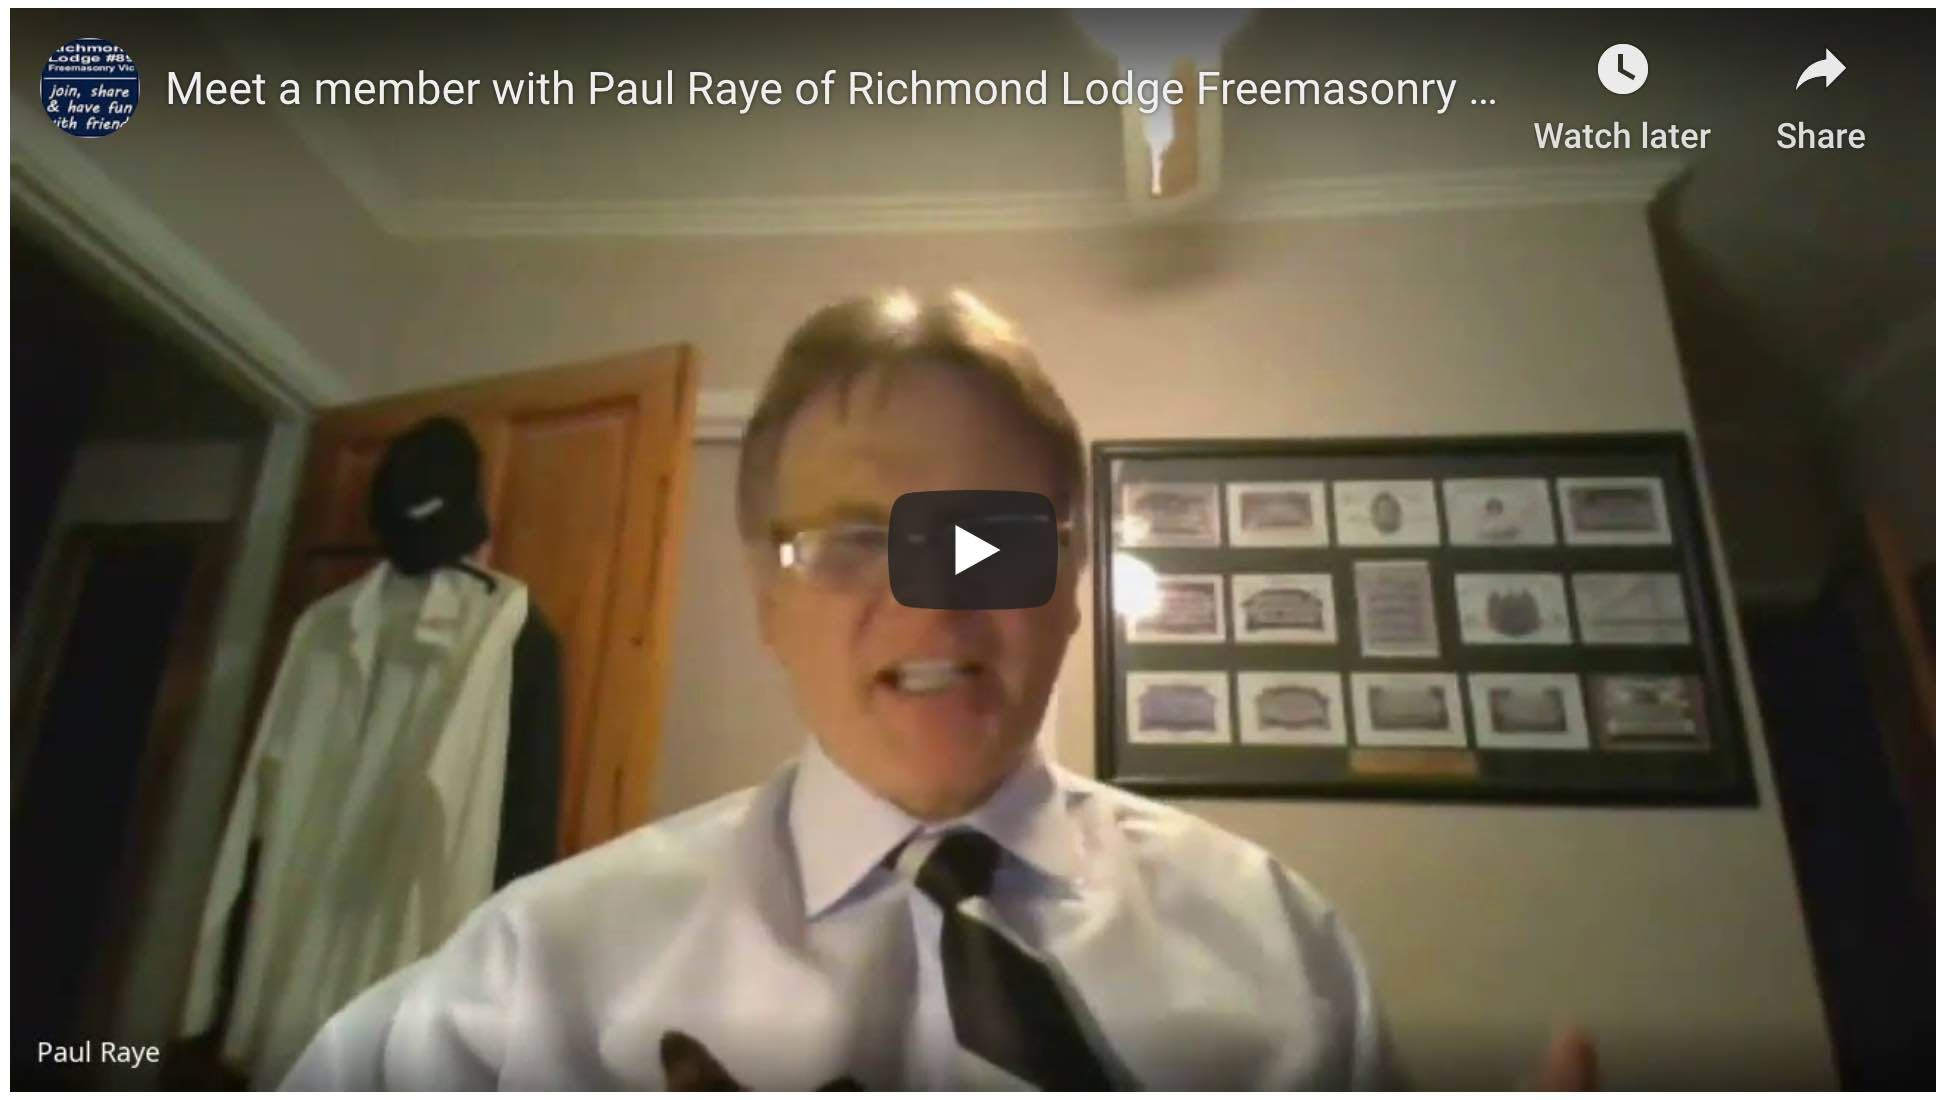 Meet a member with Paul Raye of Richmond Lodge Freemasonry Victoria